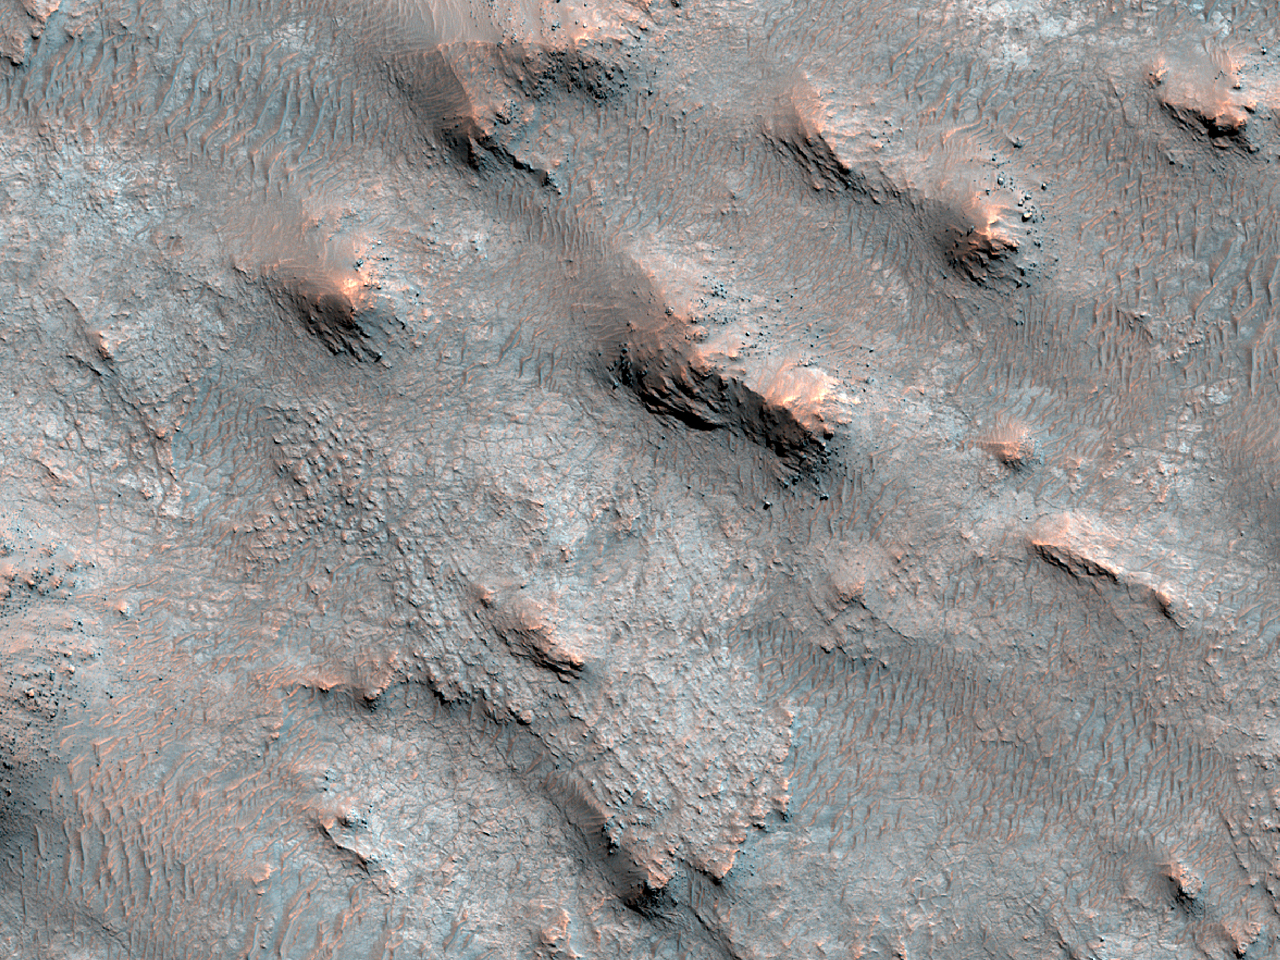 Pitted Crater Floor Material